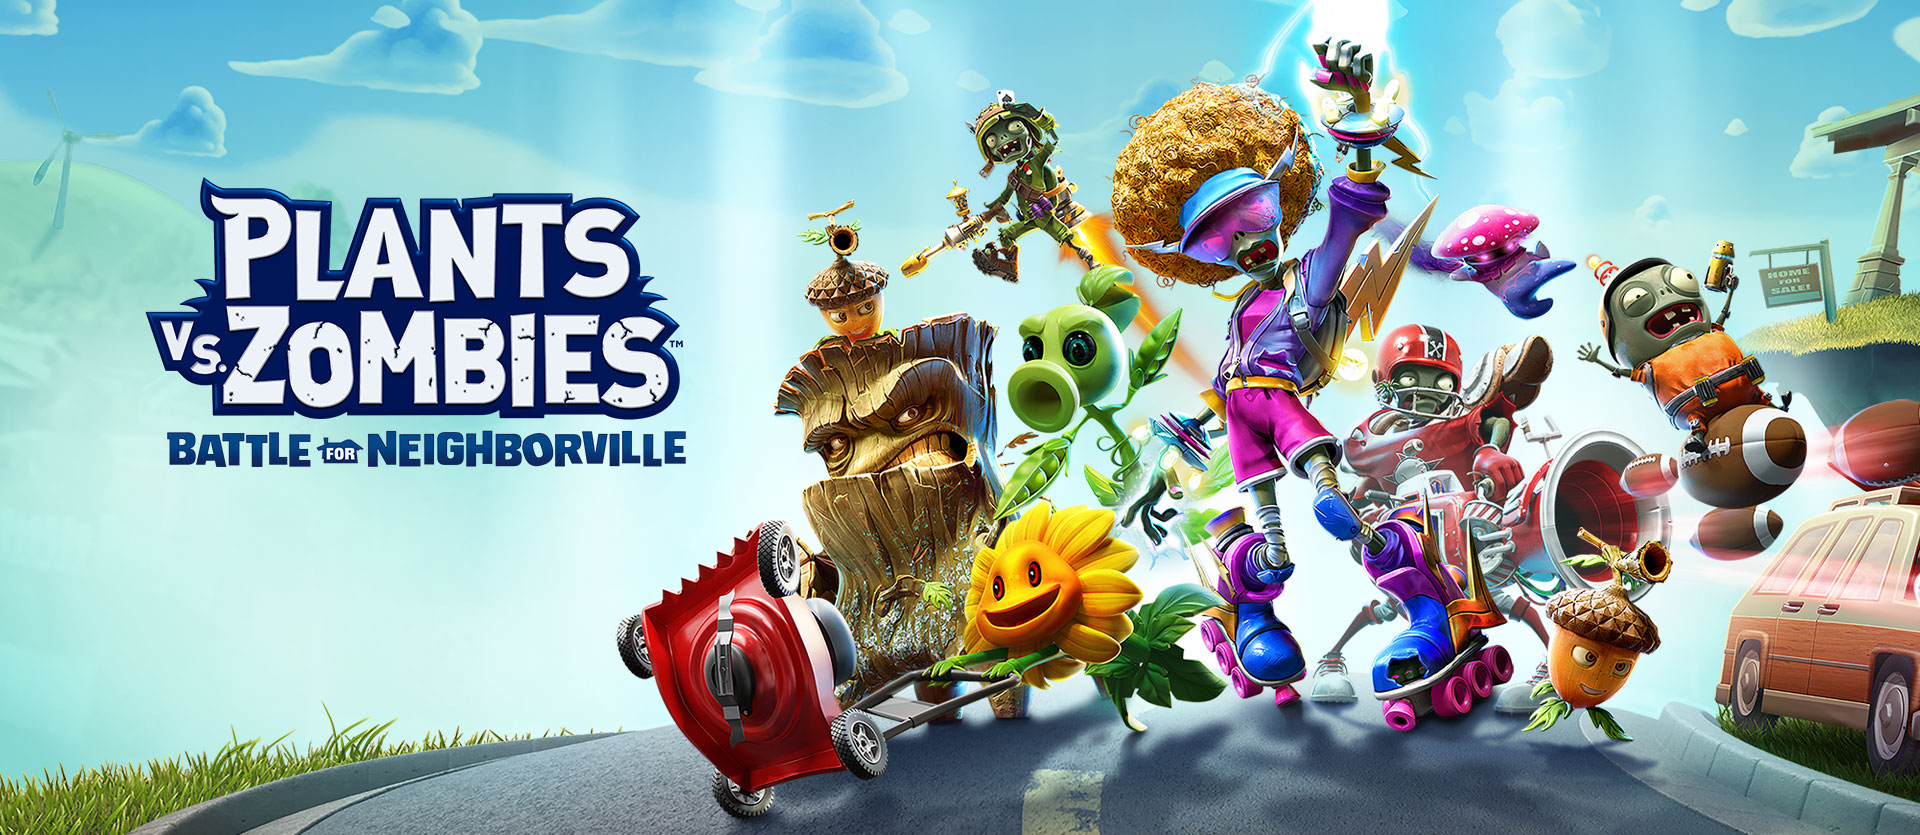 Plants vs. Zombies: Battle for Neighborville, számos karakter pózol egy utcán